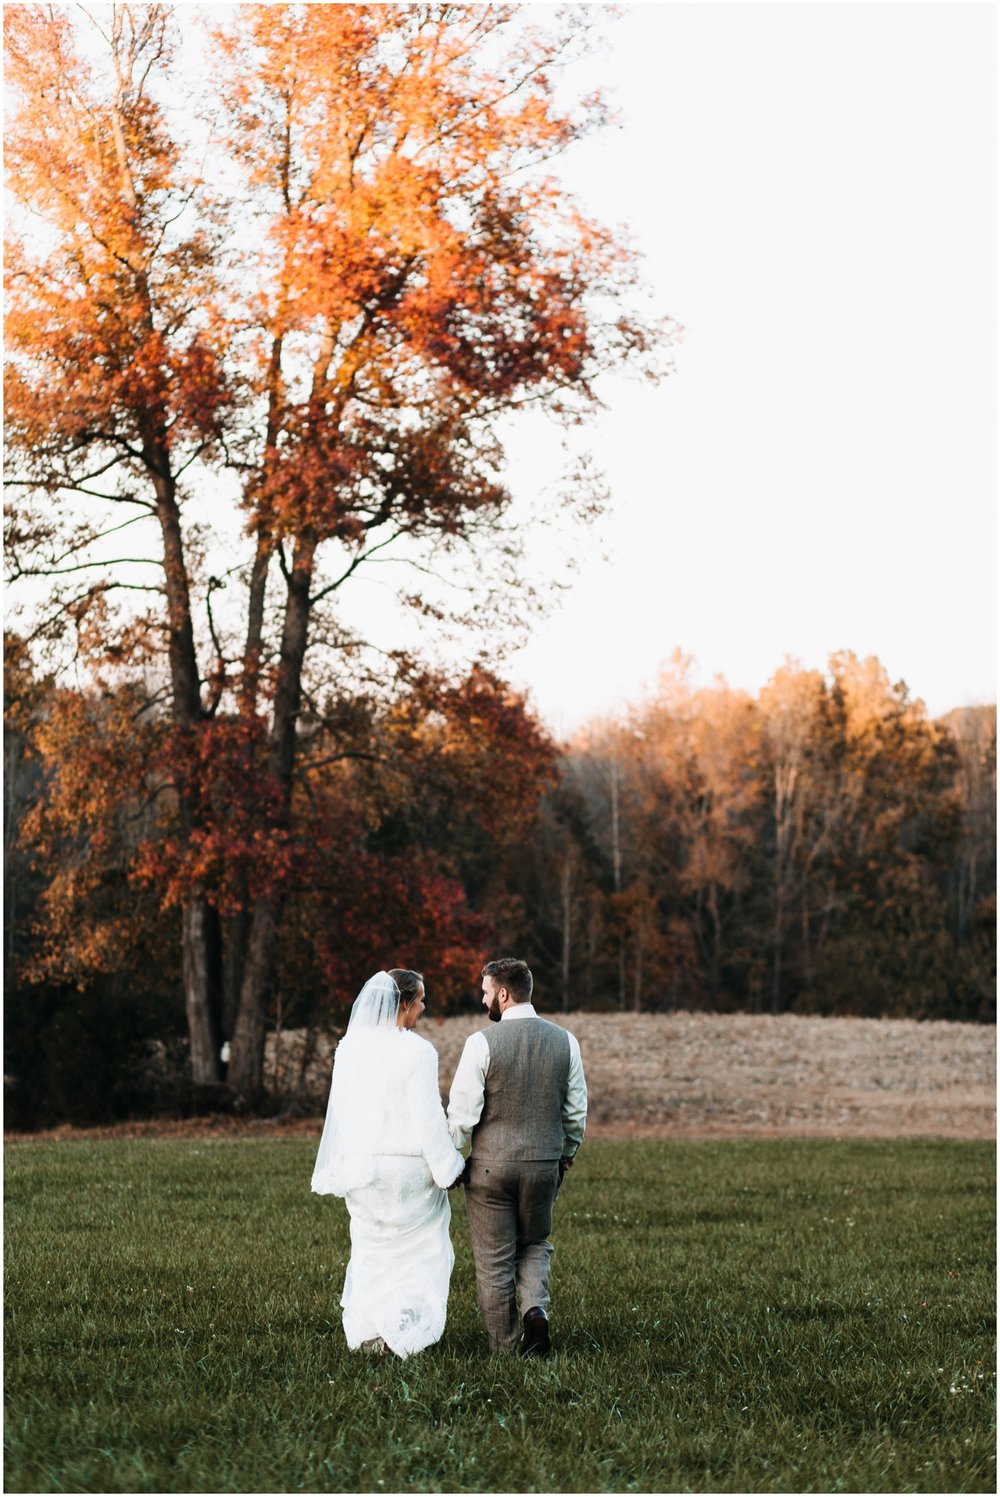 Jess+Dan_rustic_southern_farm_fall_wedding_charlotte_north carolina_taylor powers_0203.jpg